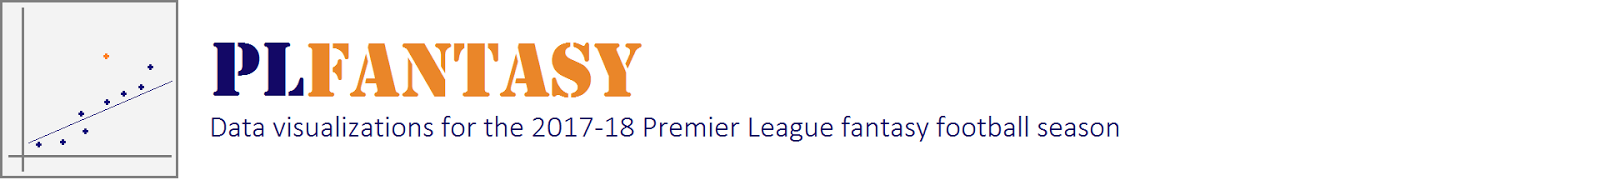 Premier League Fantasy Football Blog